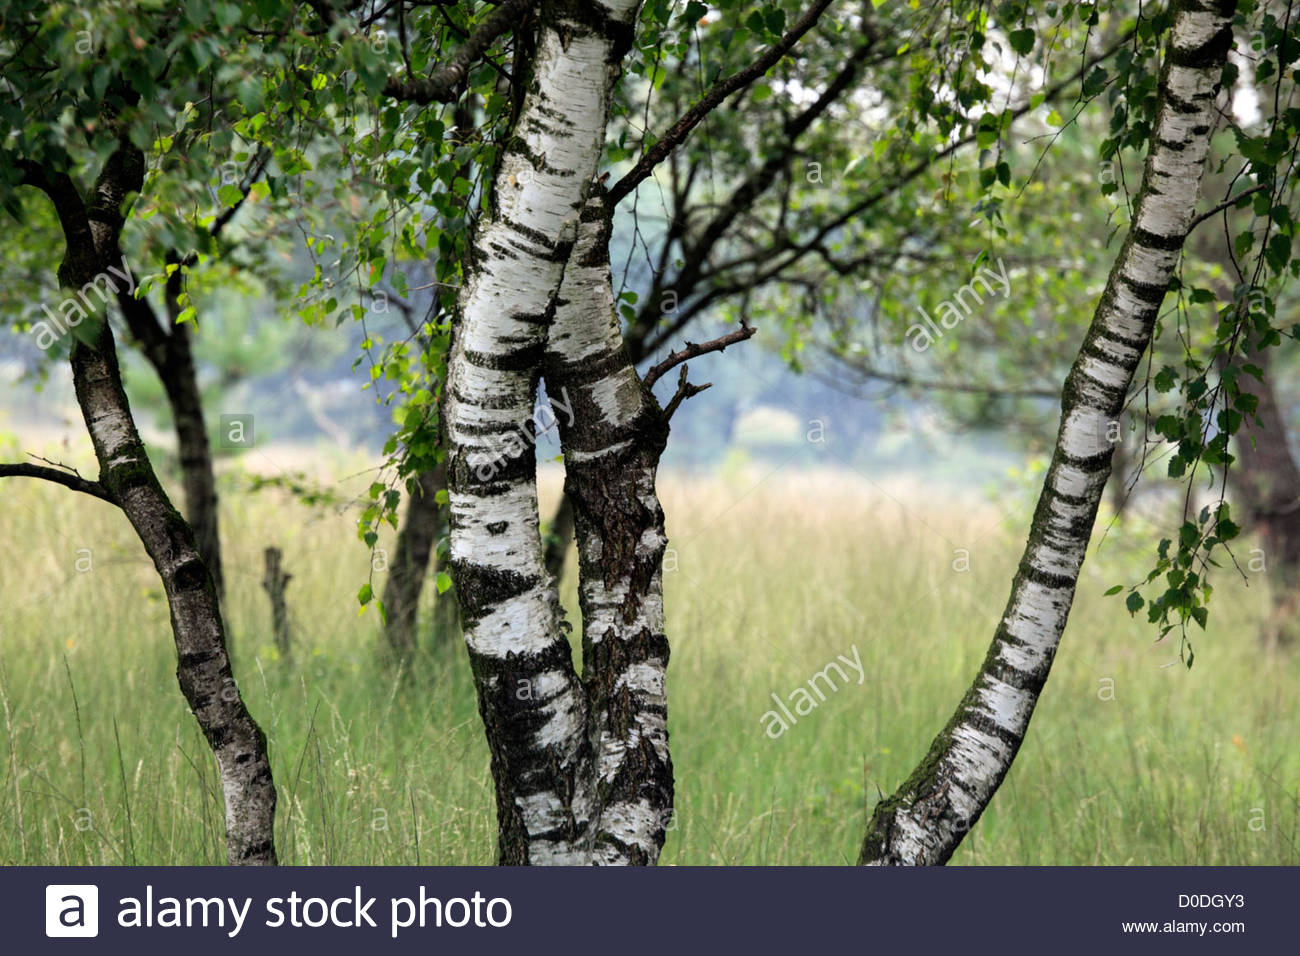 young silver birch trees with heathland grasses Stock Photo